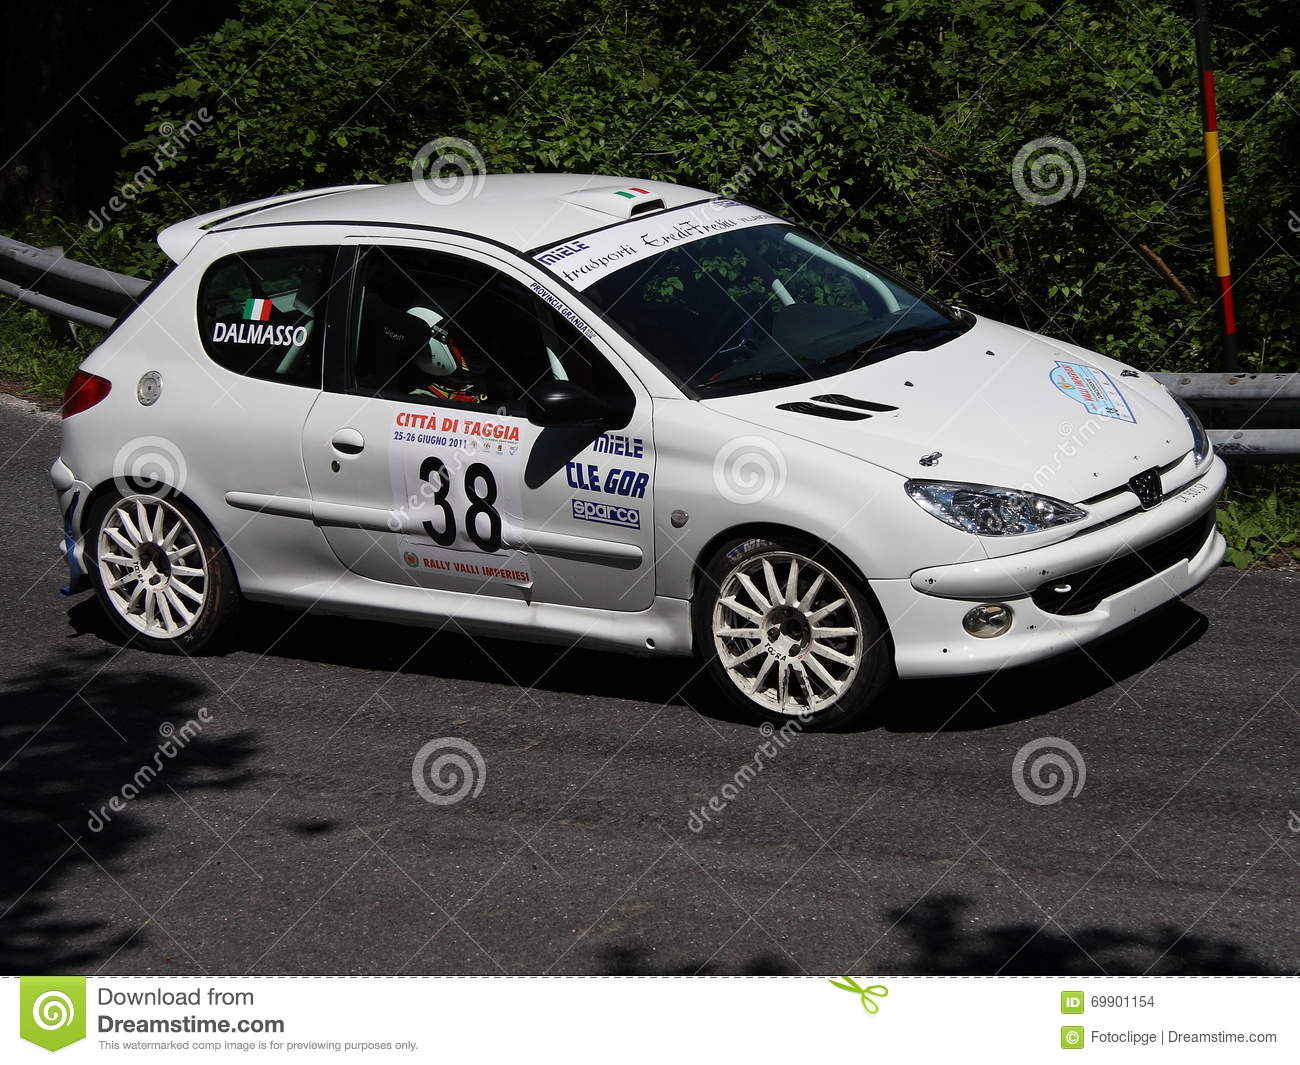 5c36c5fc5 Peugeot 206 RC rally car editorial stock image. Image of held - 69901154